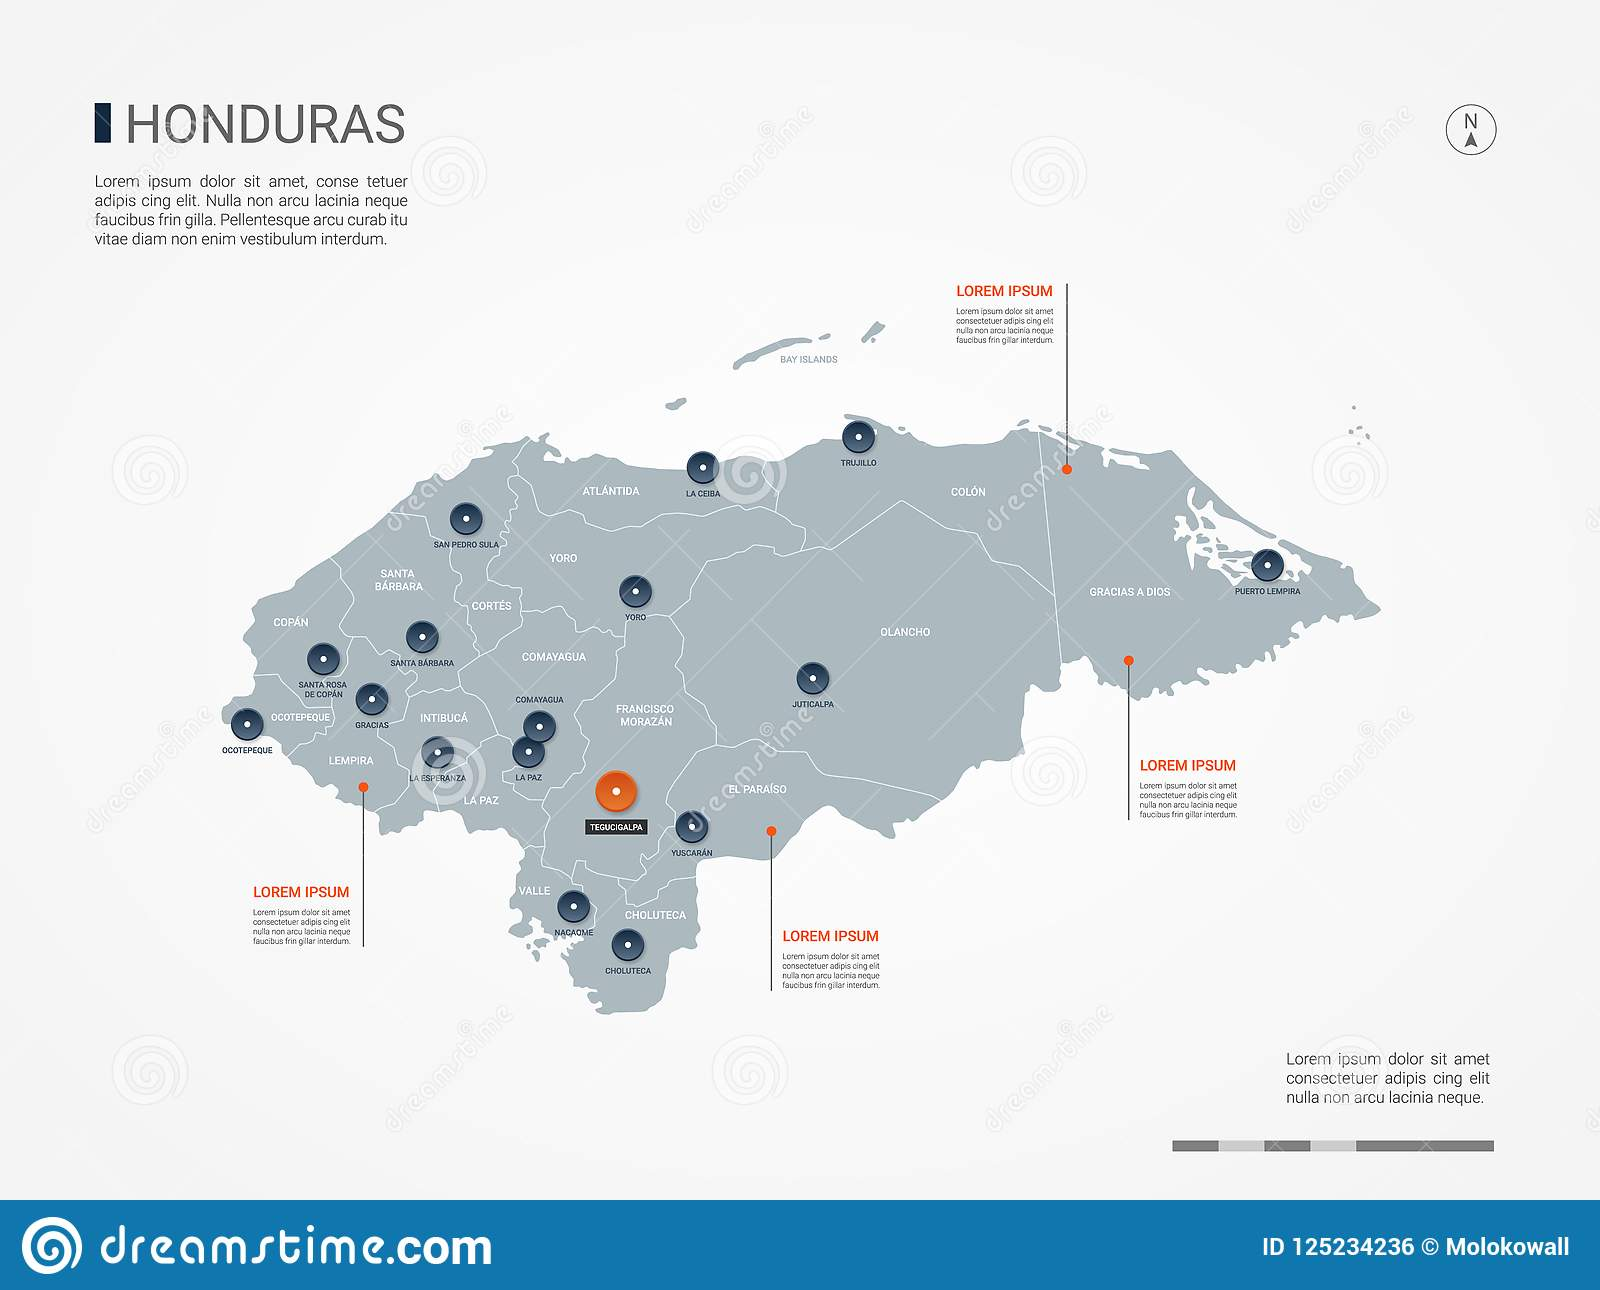 Honduras Infographic Map Vector Illustration. Stock Vector ... on map of san bernardino county cities, map of oceania cities, map of eastern united states cities, map of s korea cities, map of kosovo cities, map of luxembourg cities, map of rio grande cities, map of palau cities, map of guyana cities, map of ohio showing cities, map of the dominican republic cities, map of western tennessee cities, map of laos cities, map of niger cities, map of mississippi river cities, map of democratic republic of congo cities, map equatorial guinea cities, map of guam cities, map of gulf of california cities, map of burundi cities,